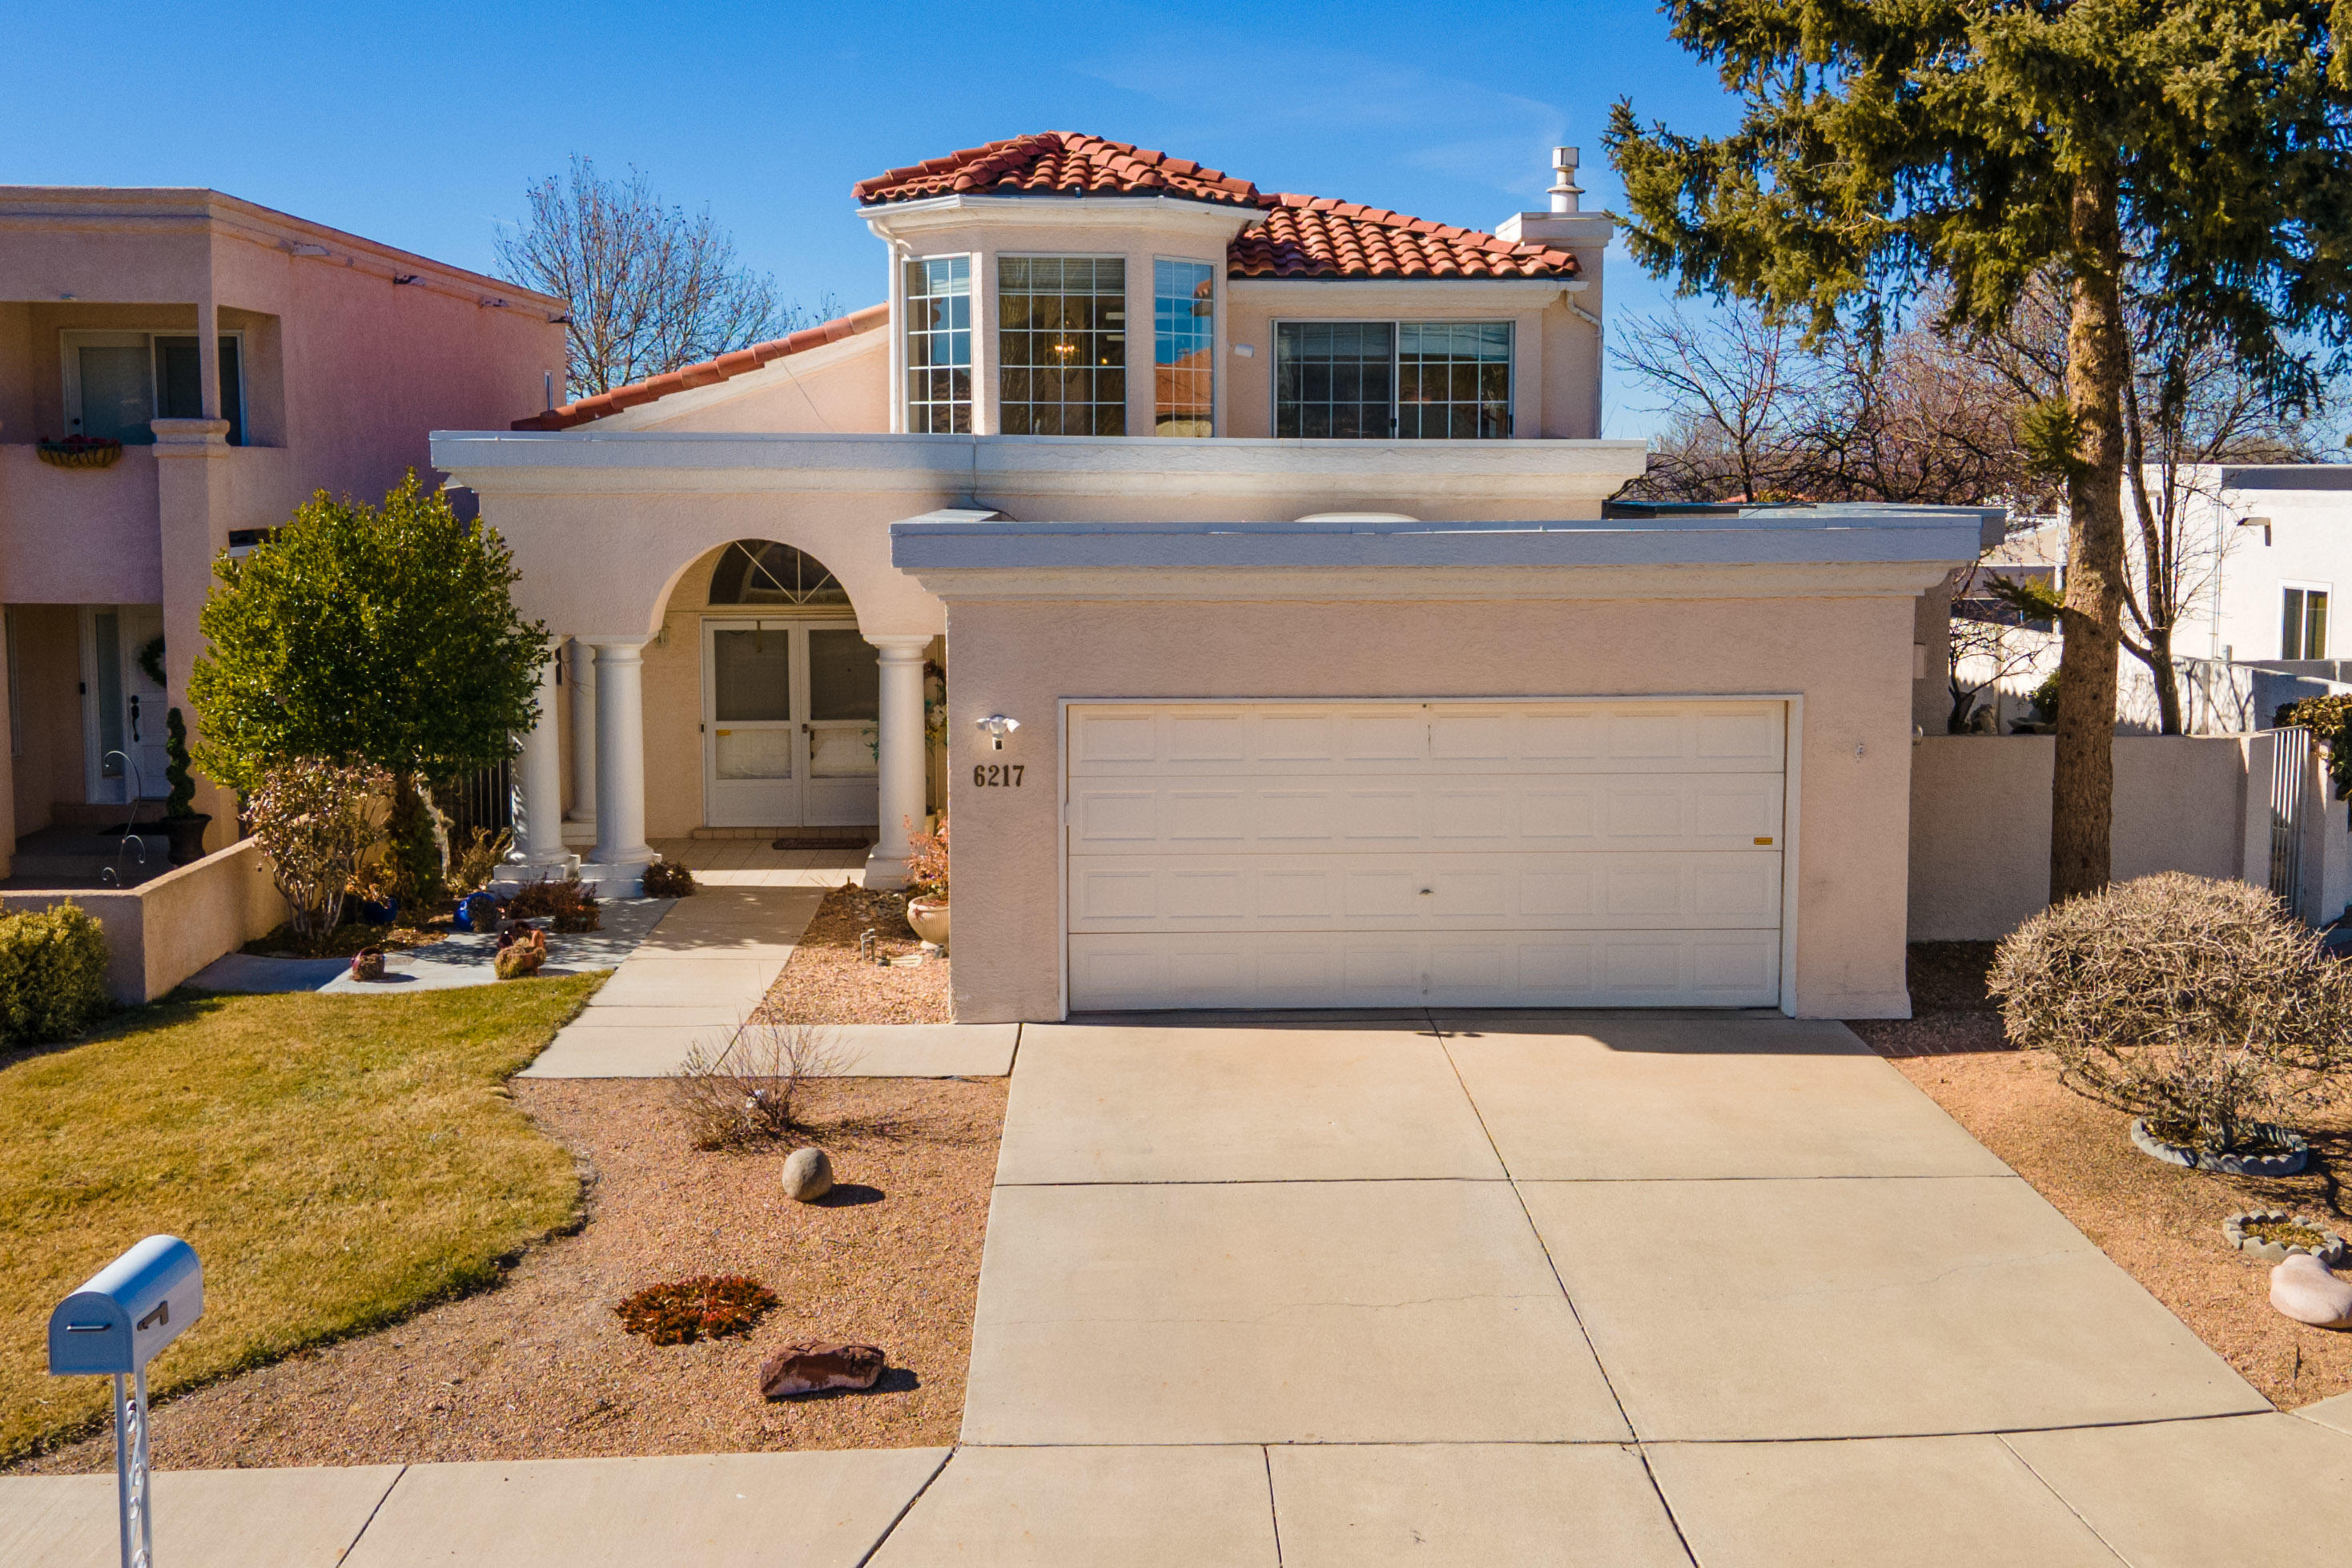 6217 PARKTREE Place, Albuquerque NM 87111